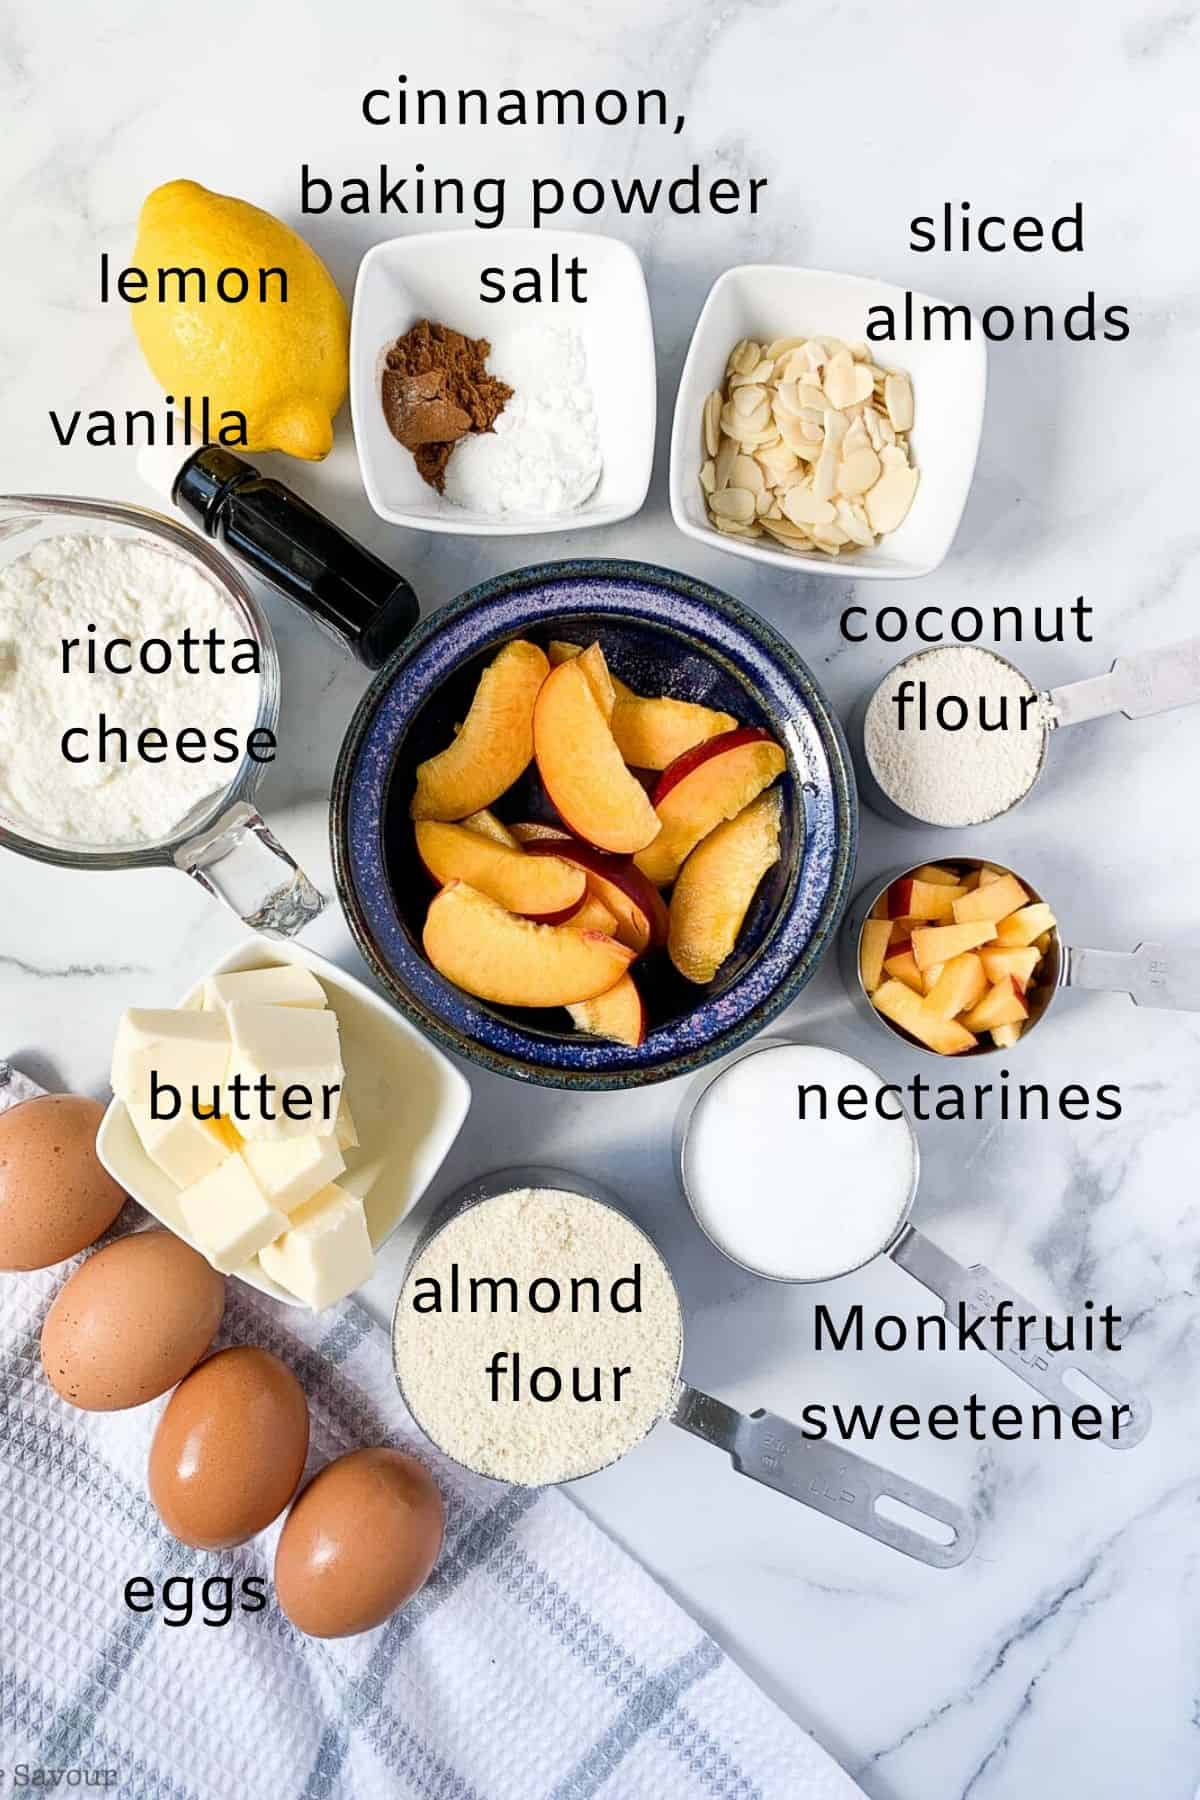 Labeled Ingredients for Flourless Nectarine Ricotta Cake